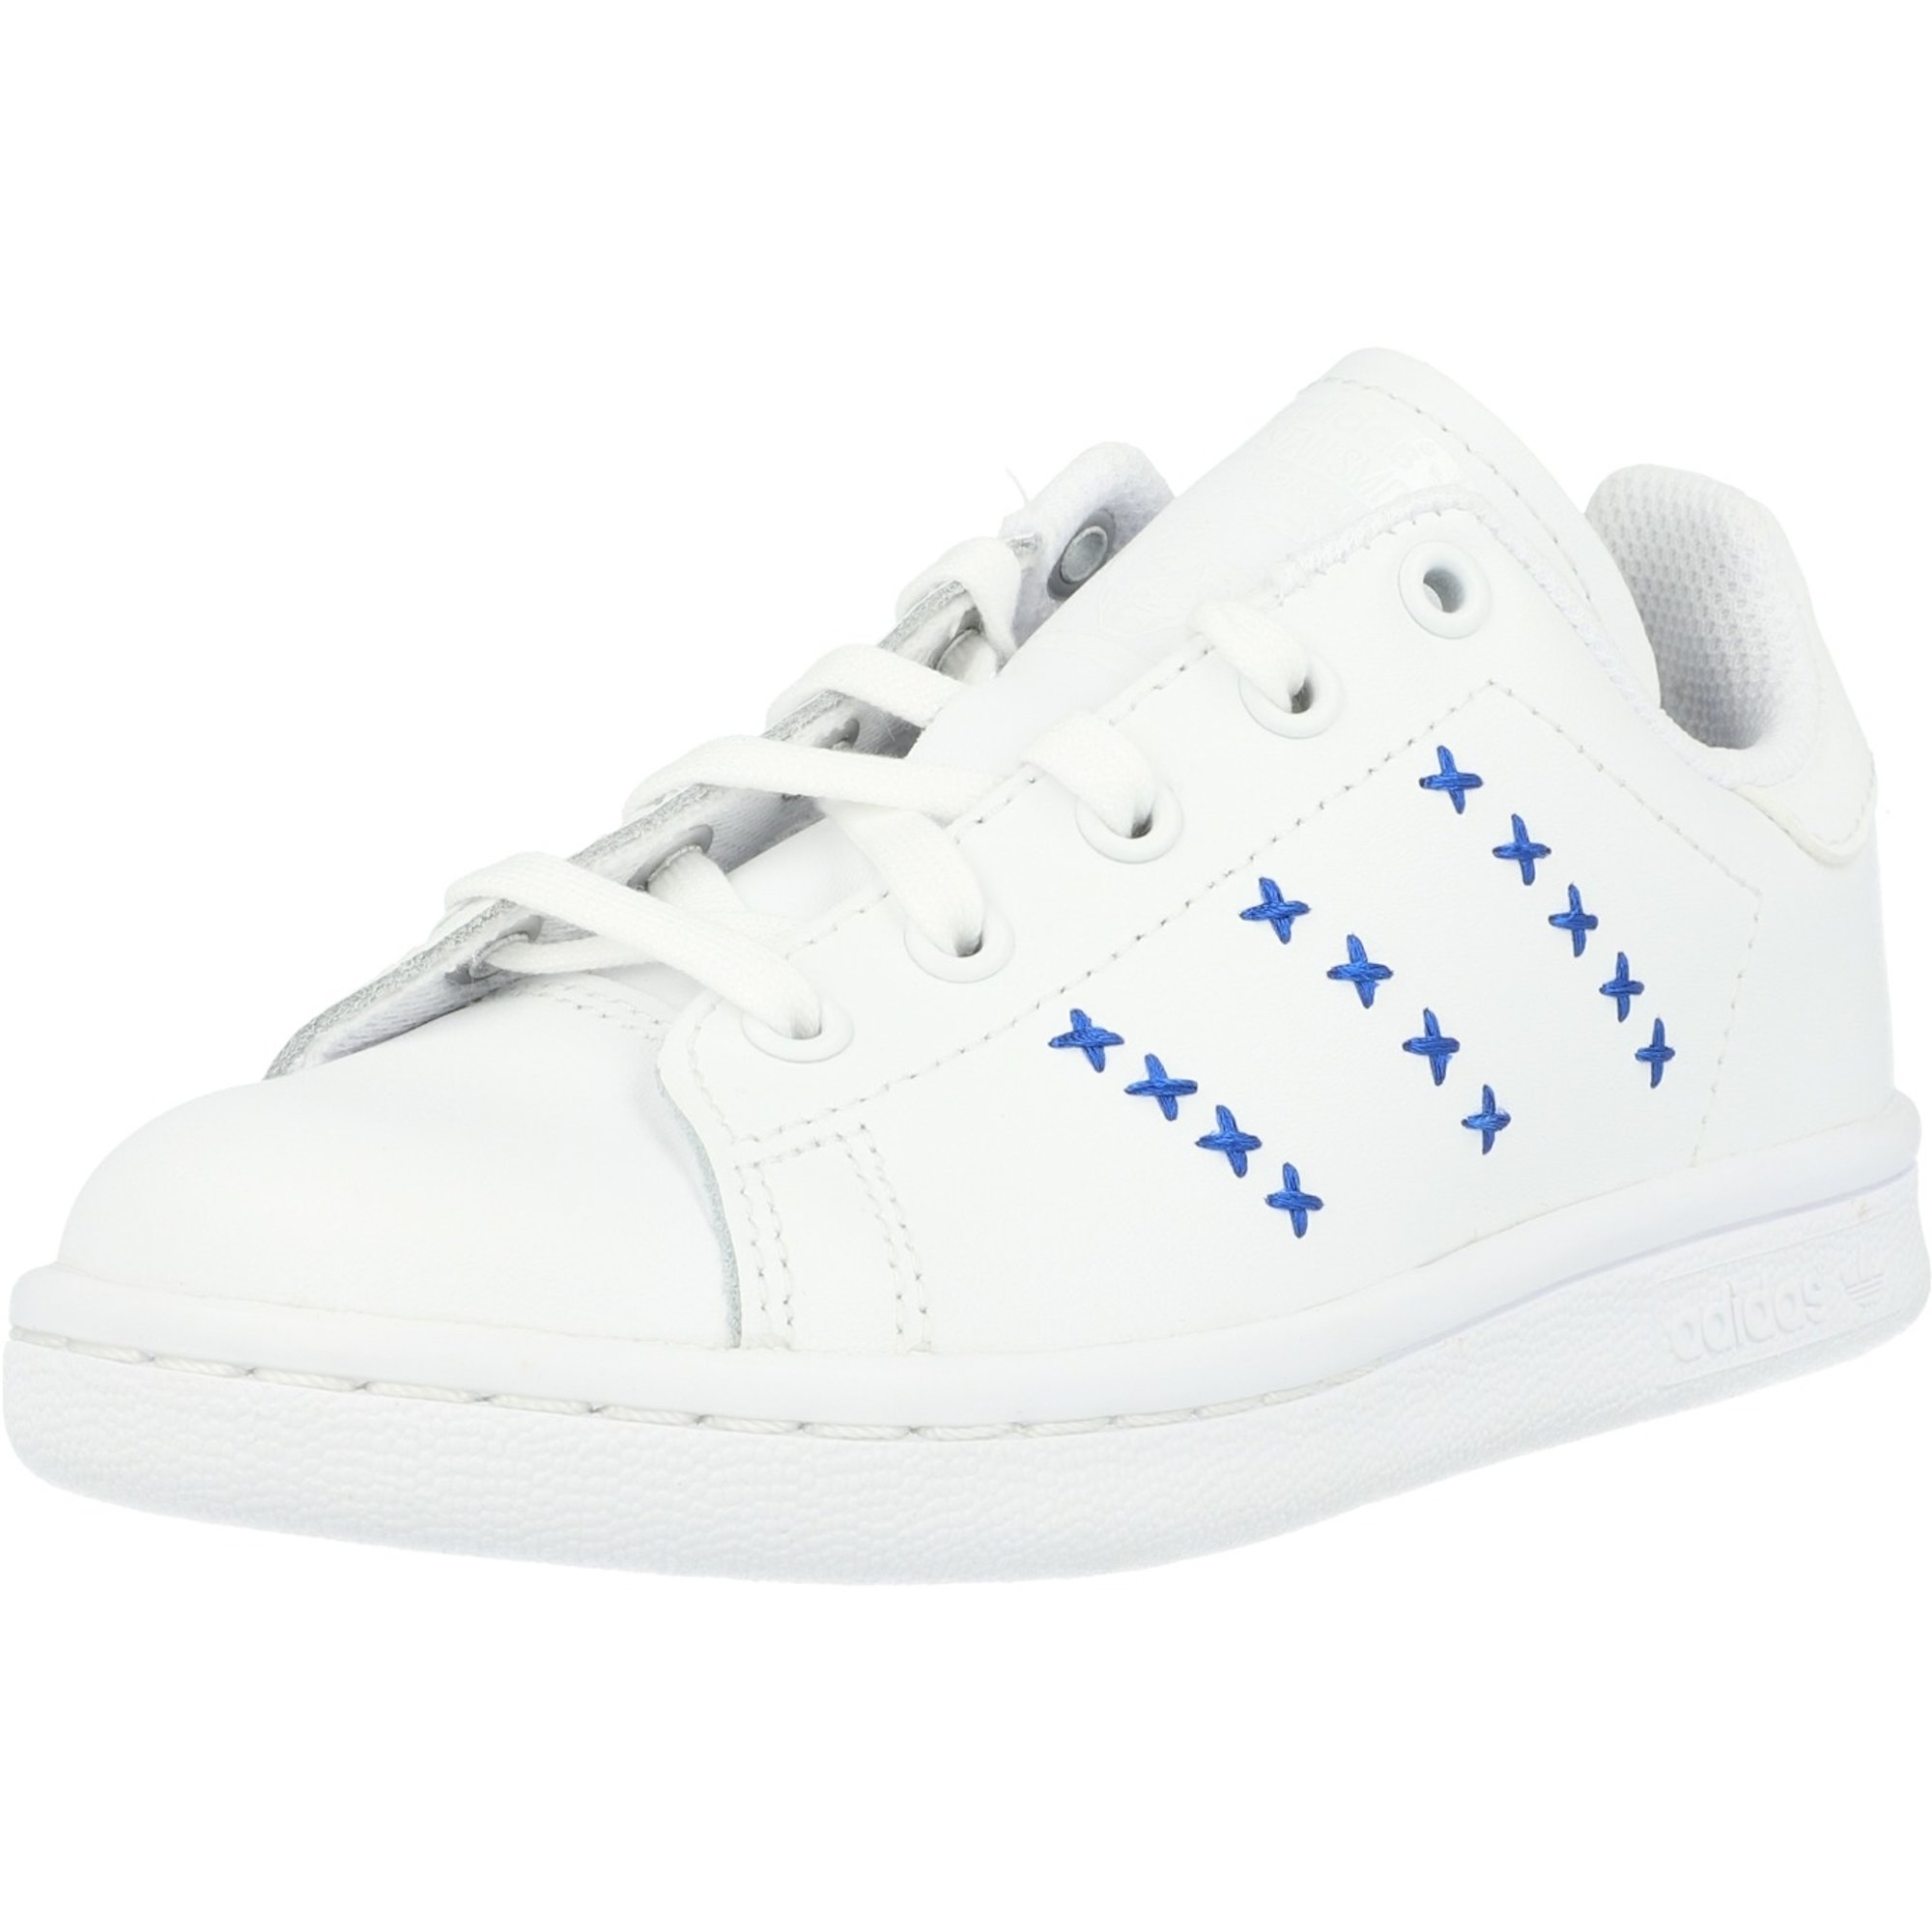 adidas Originals Stan Smith C White/Royal Blue Leather Child